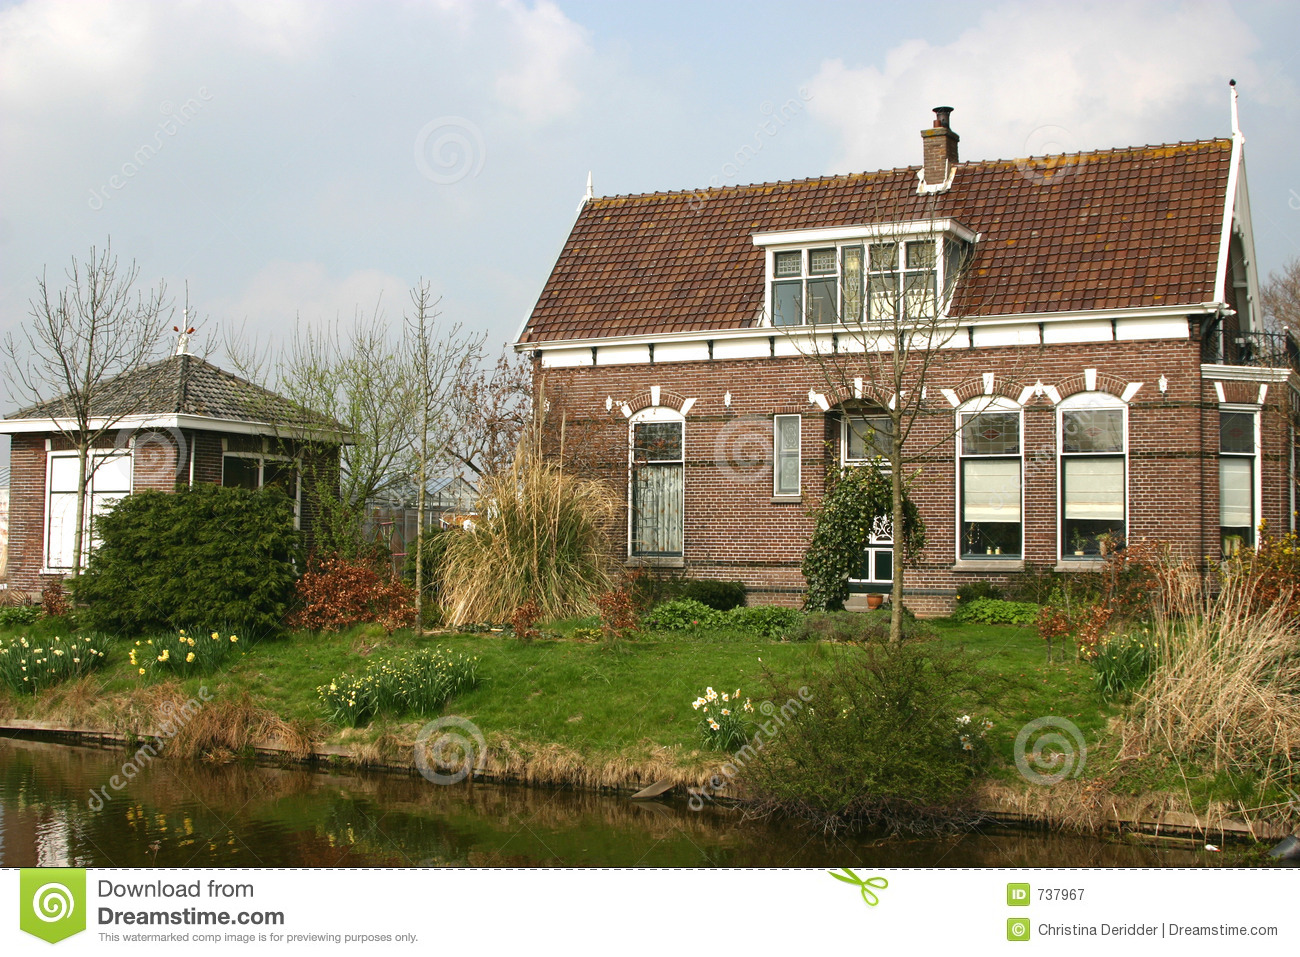 Dutch farm house royalty free stock photography image for Farm house netherlands